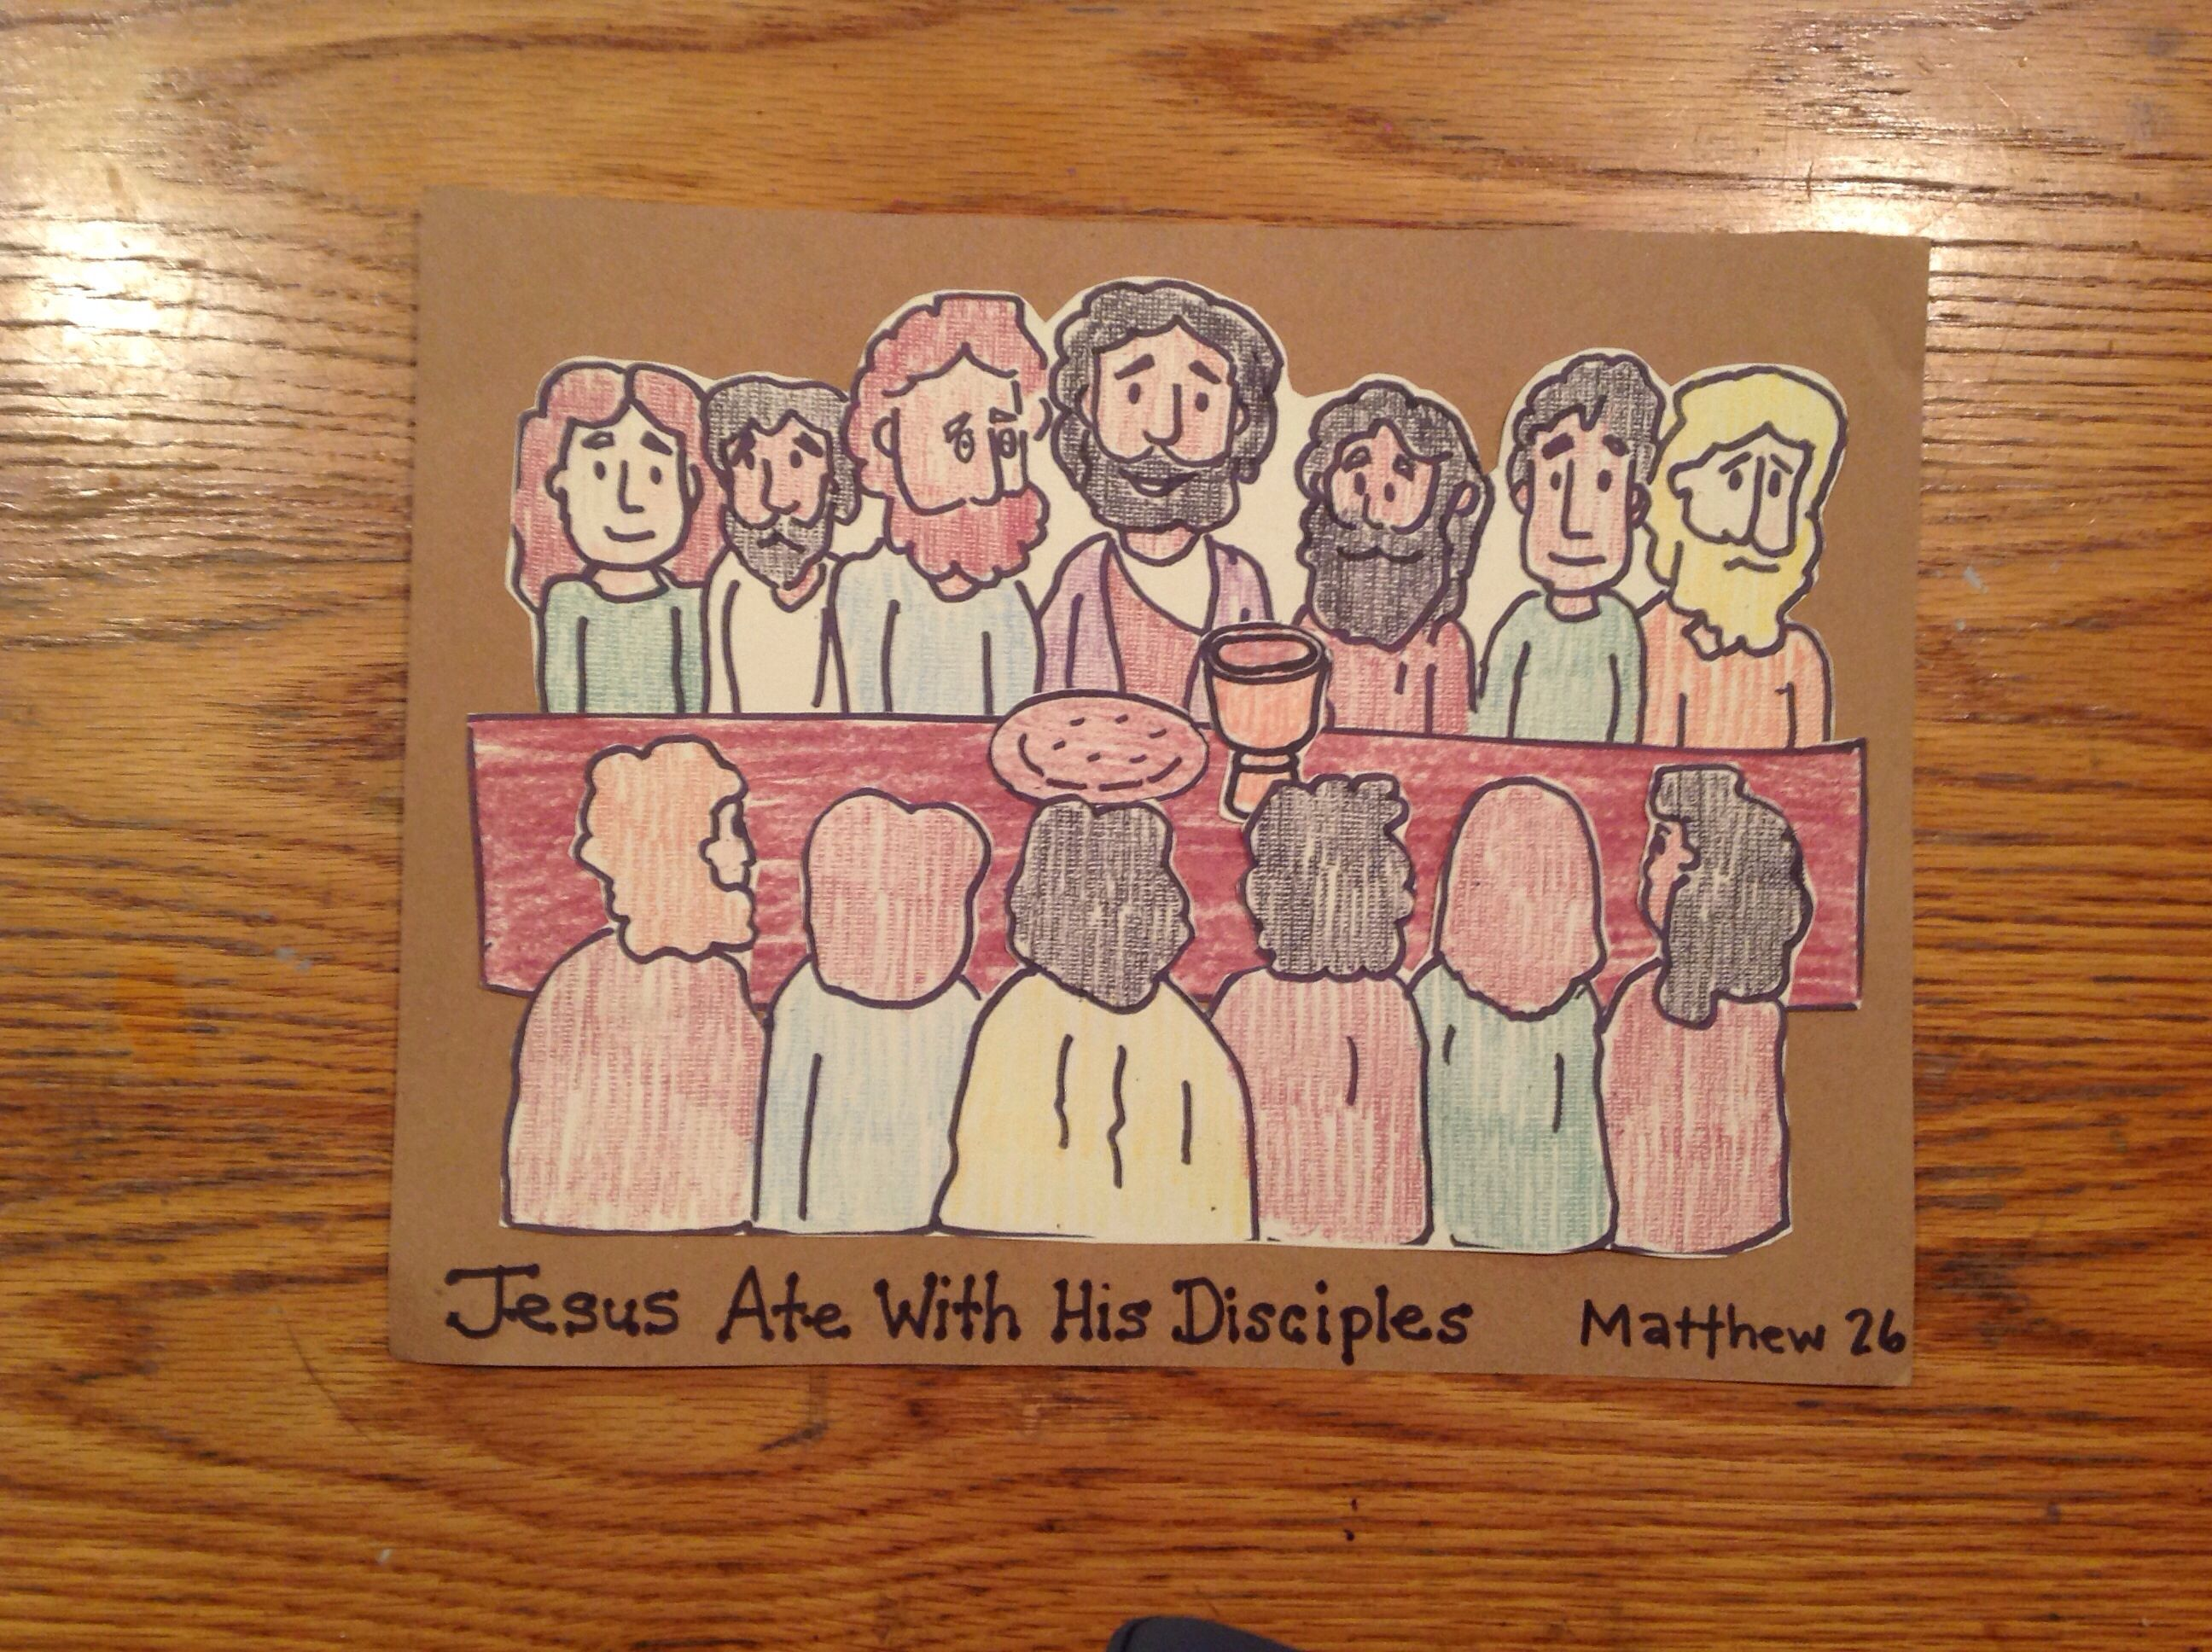 50+ Last supper craft ideas for preschoolers ideas